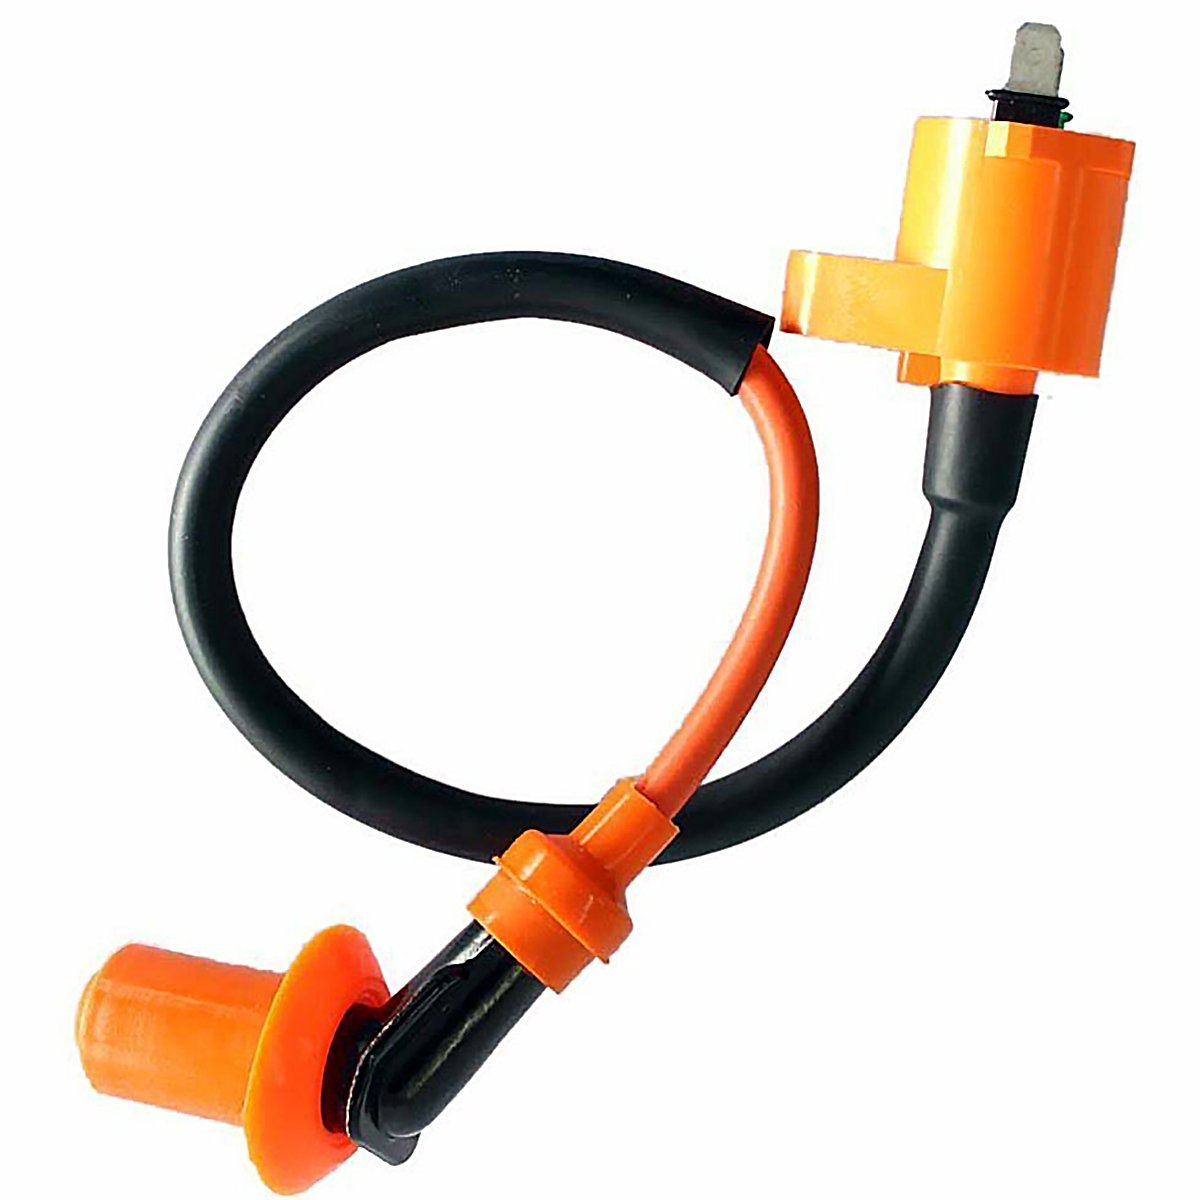 Amhousejoy Ignition Coil For Gy6 50cc 125cc 150cc 250cc Scooter Moped Go Kart ATV SHENZHEN TAIXINGXING